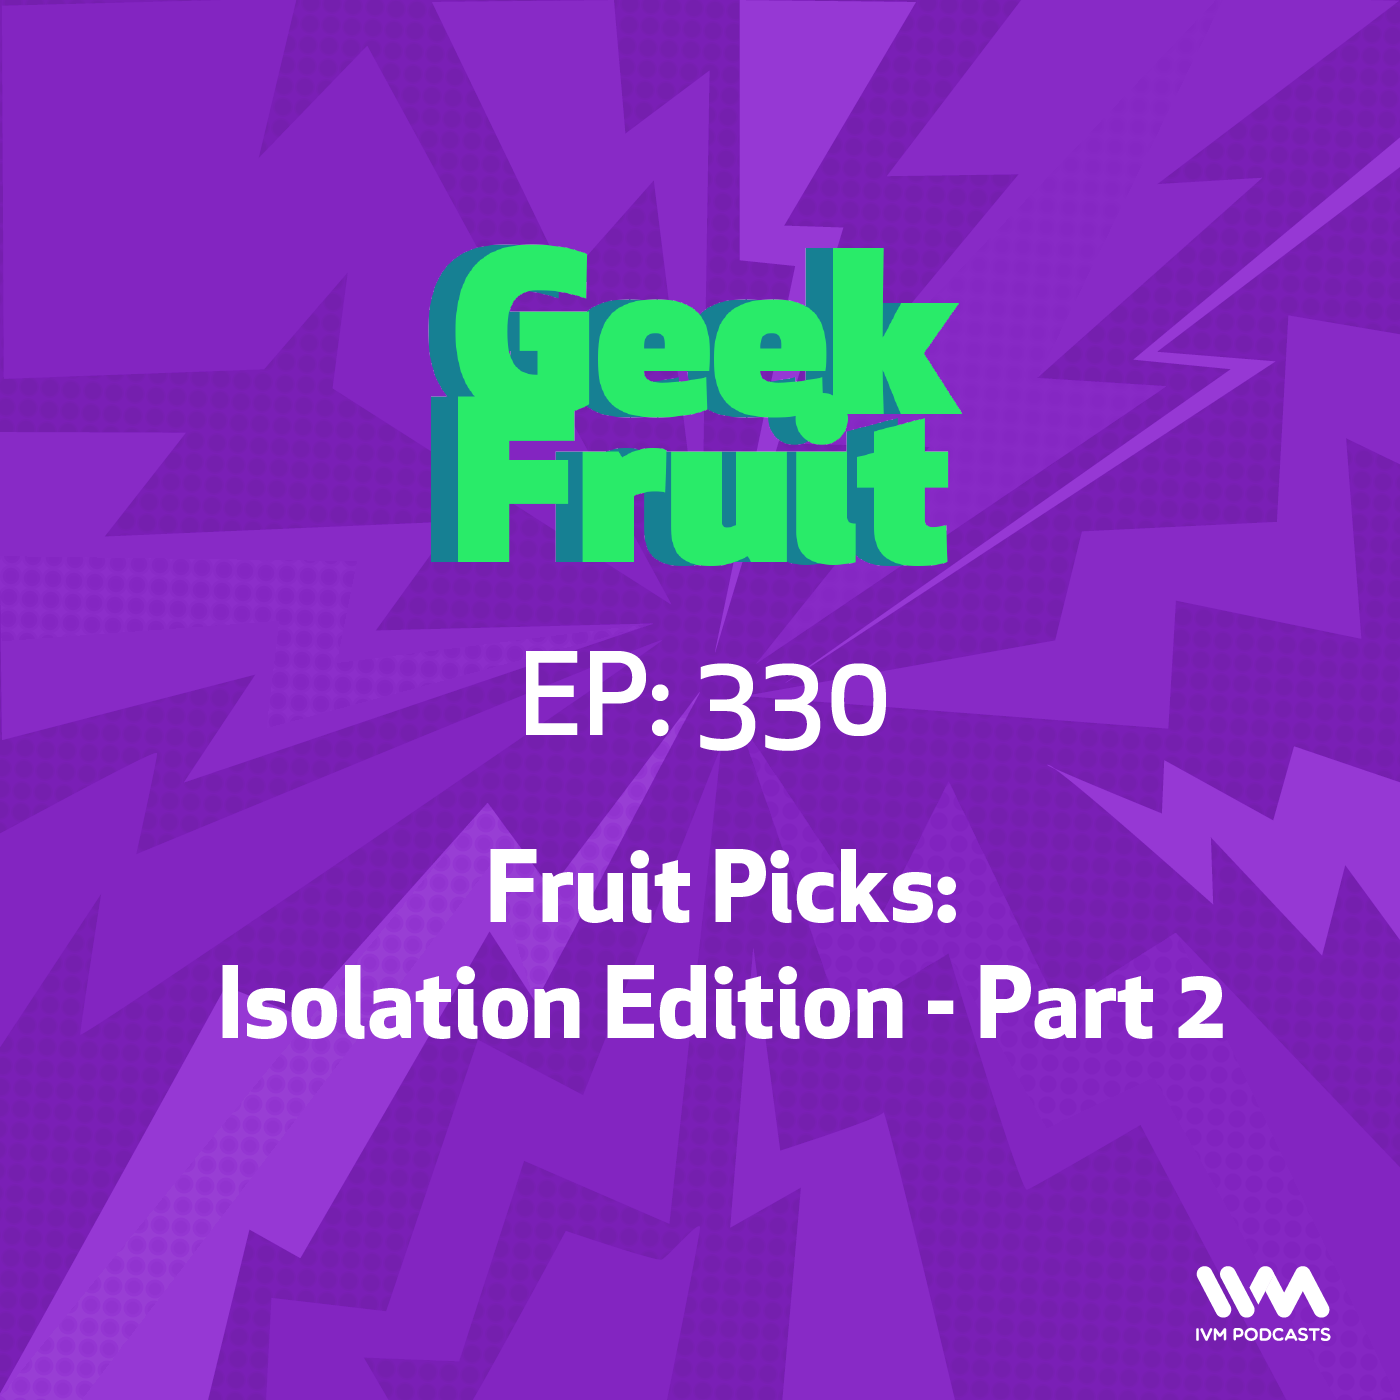 Ep. 330: Fruit Picks: Isolation Edition - Part 2